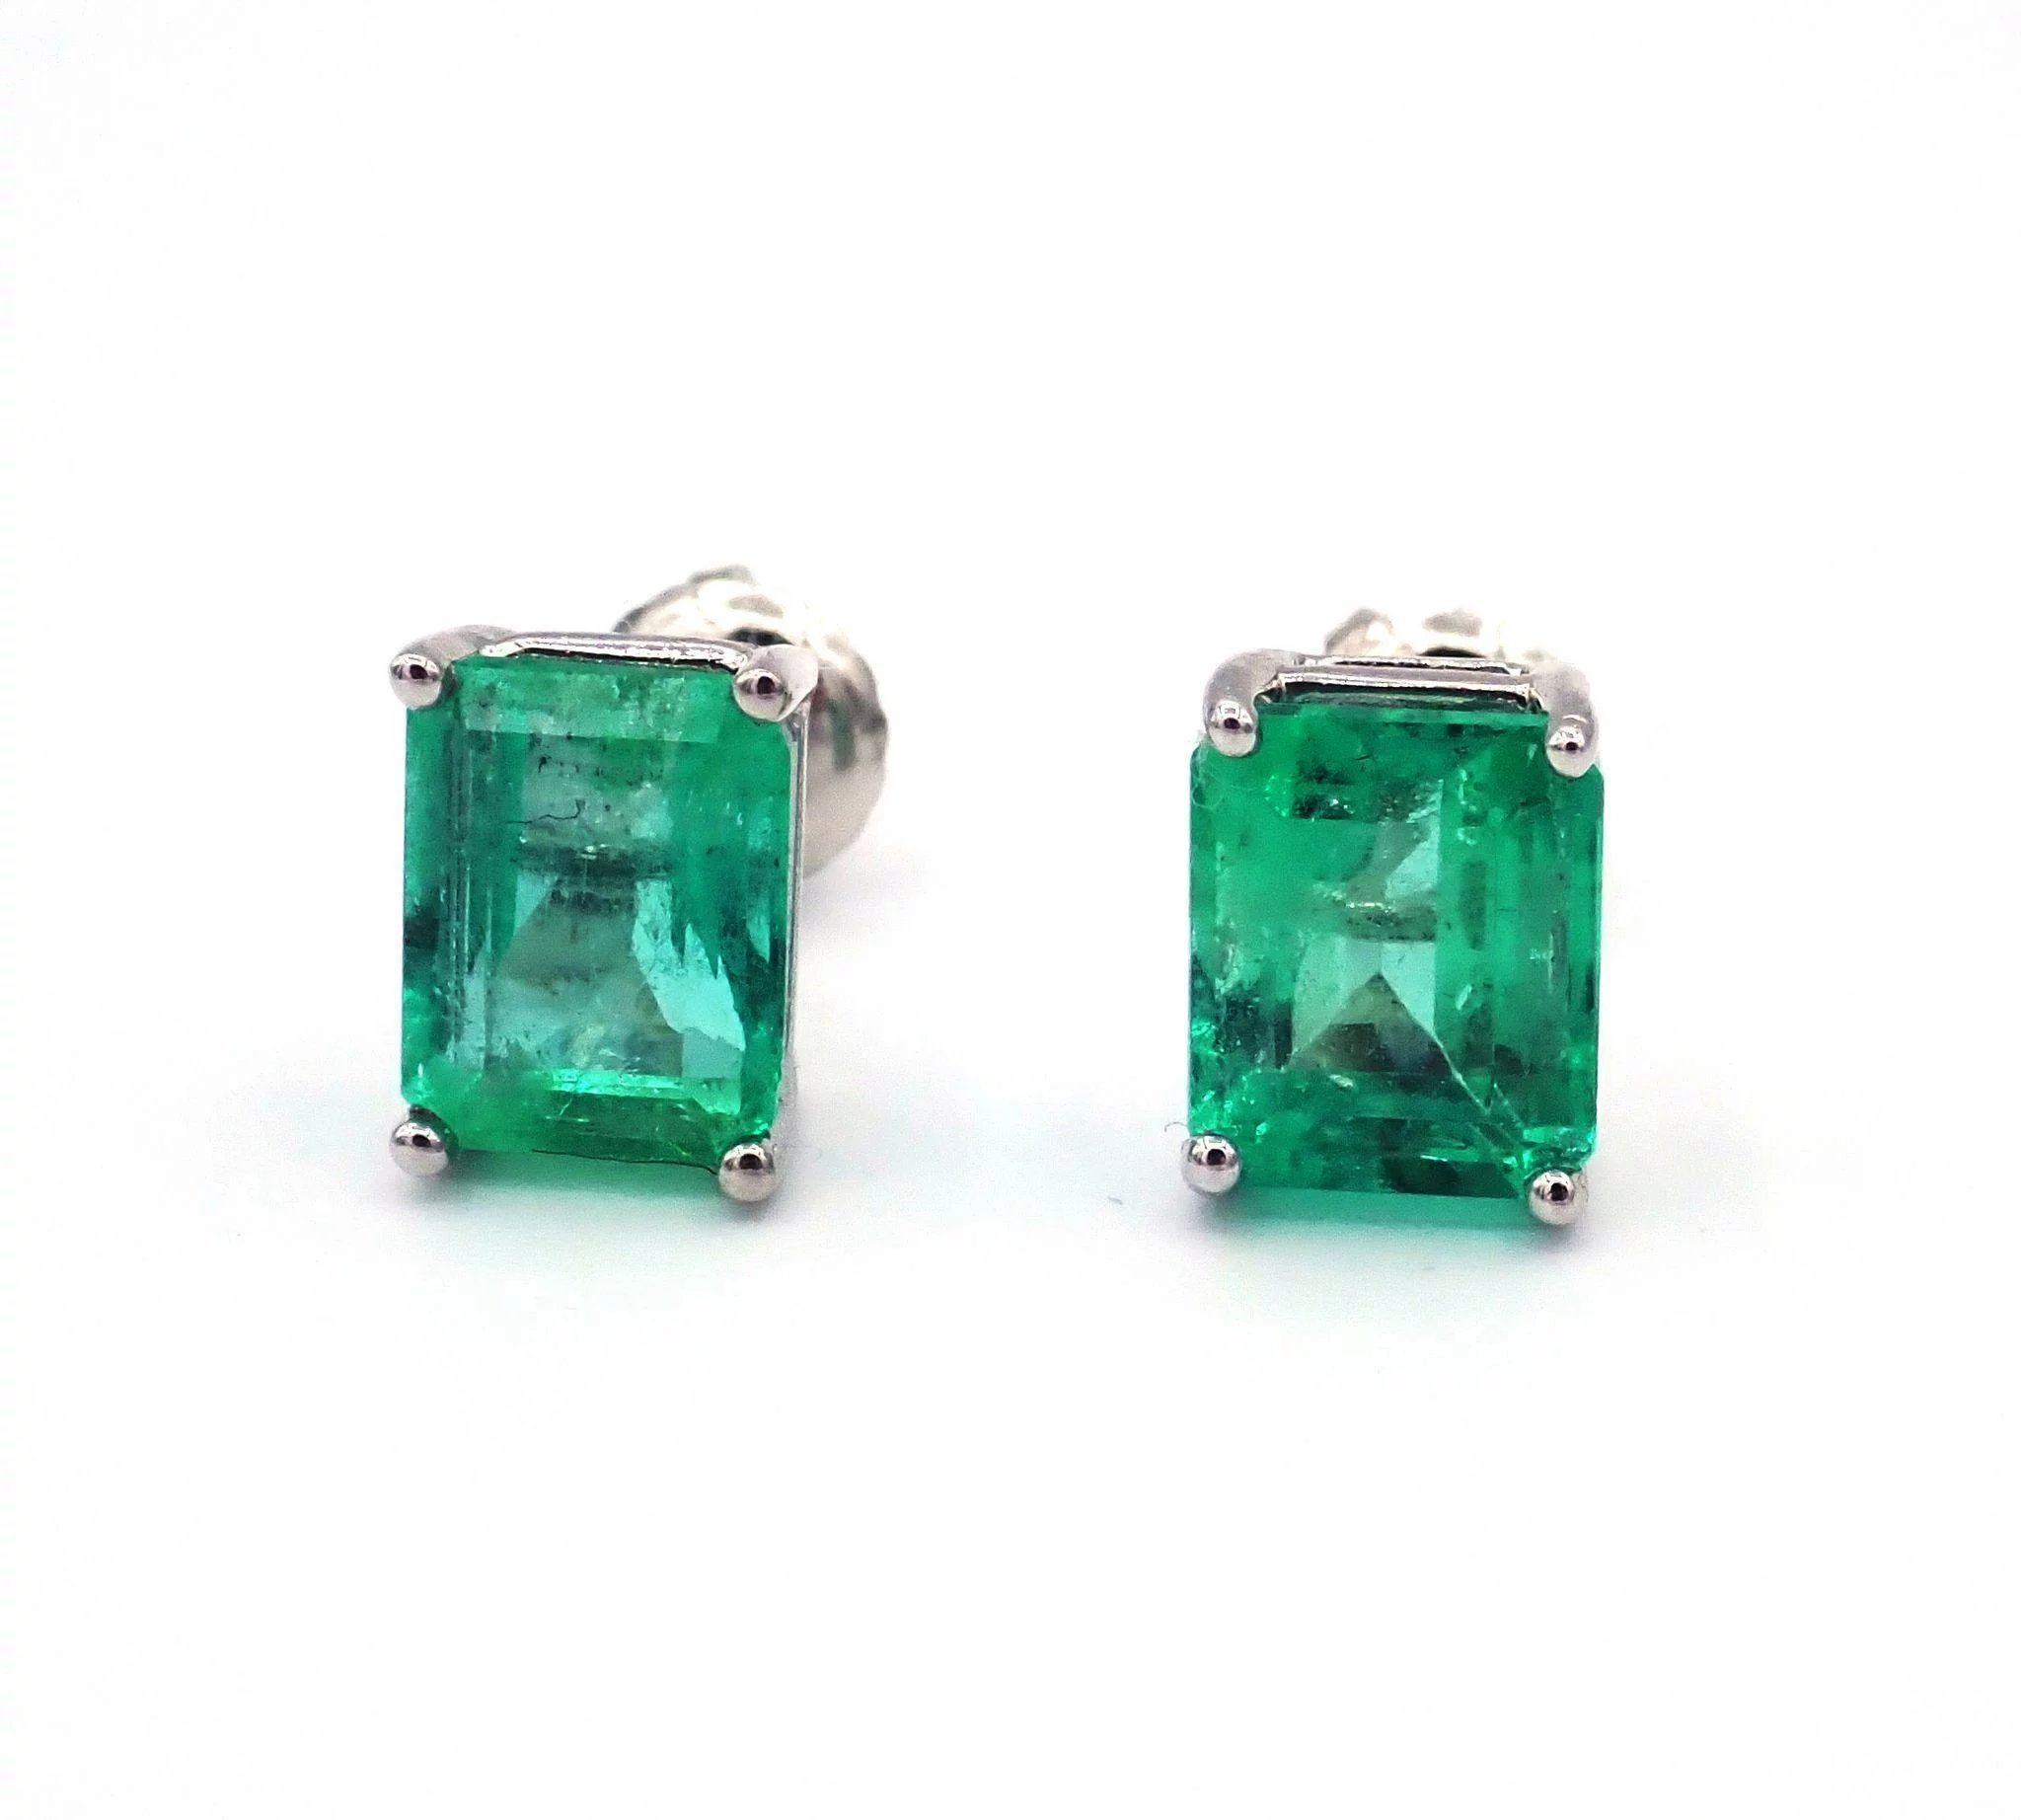 lever kind product earrings a and pair diamond one of emerald colombian pear shaped closures natural with back